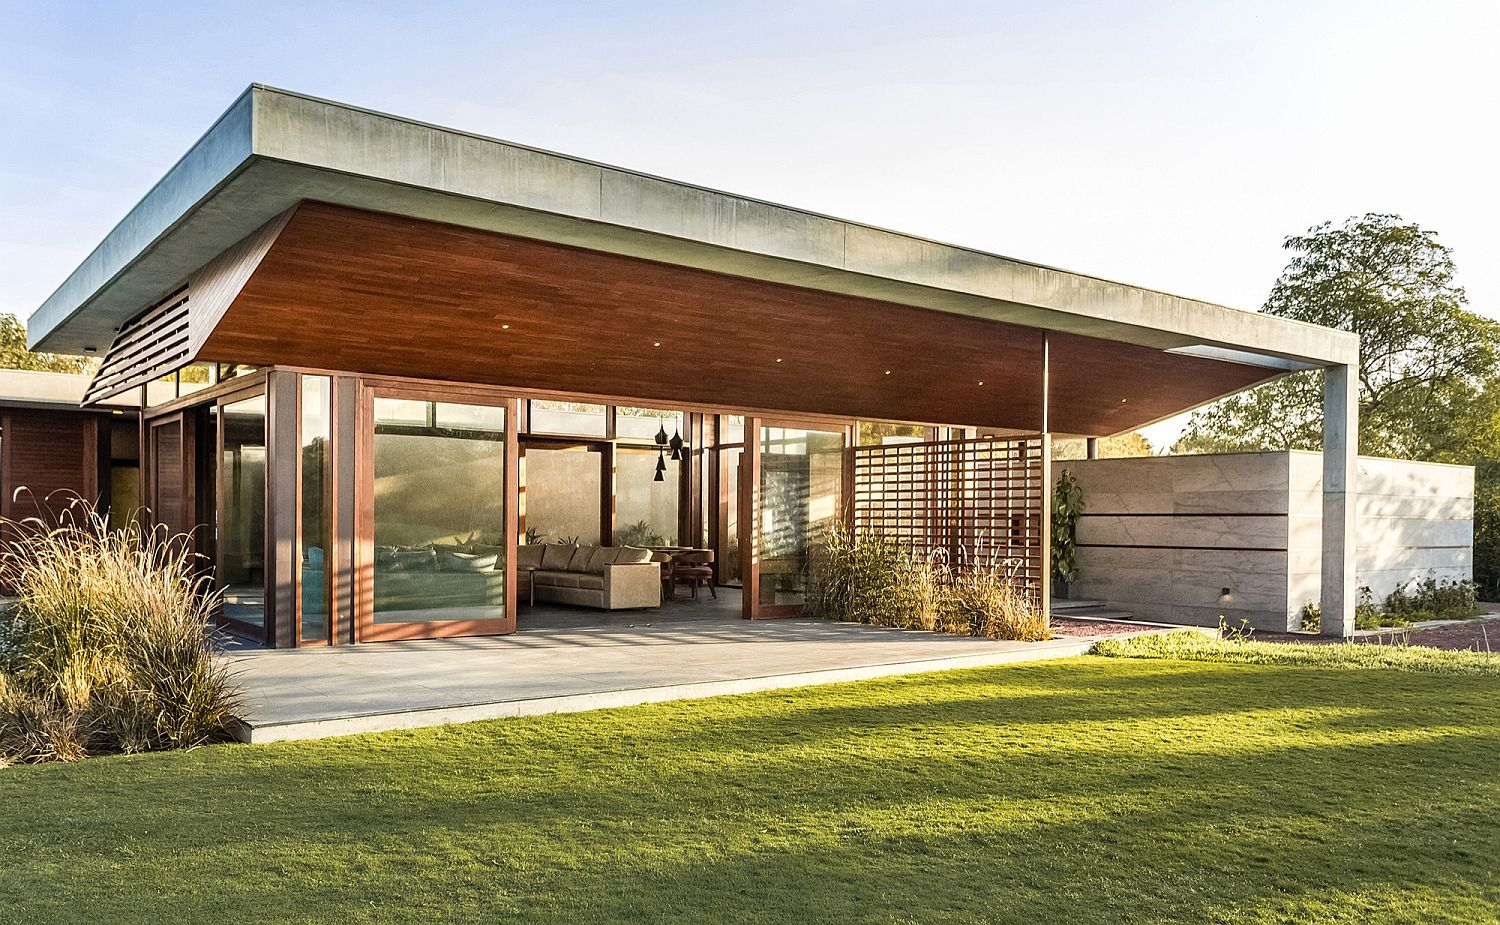 Wooden-addition-to-the-verandah-keeps-out-scorching-subtropical-heat